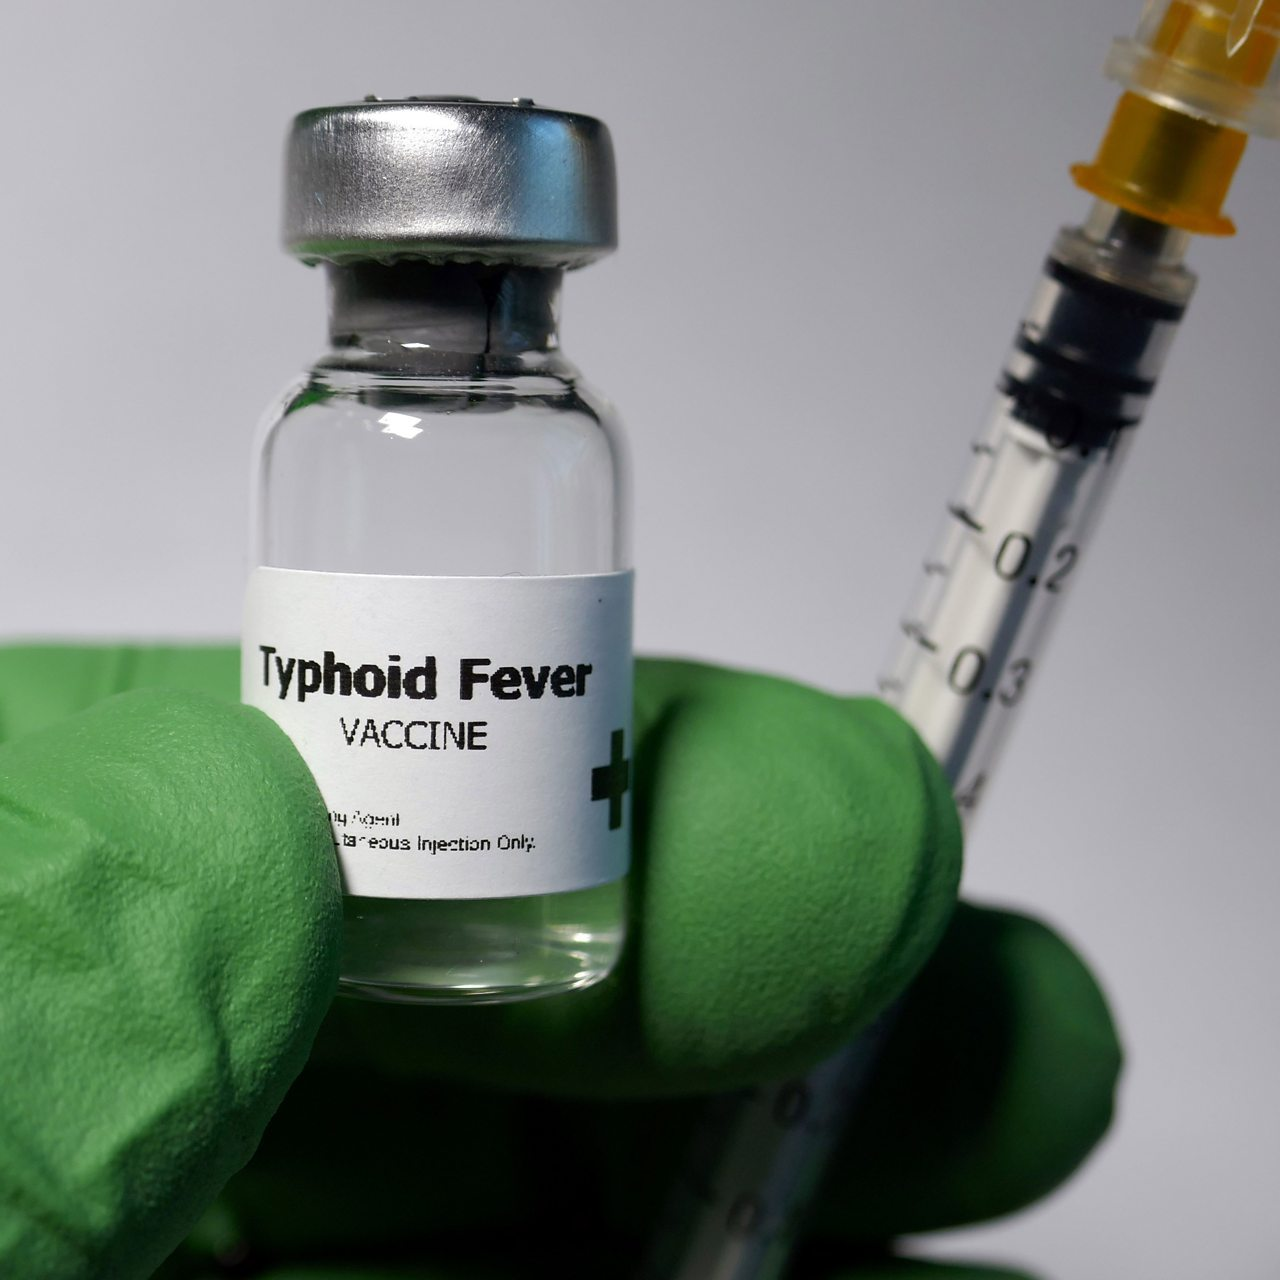 Photograph of Typhoid Fever vaccine